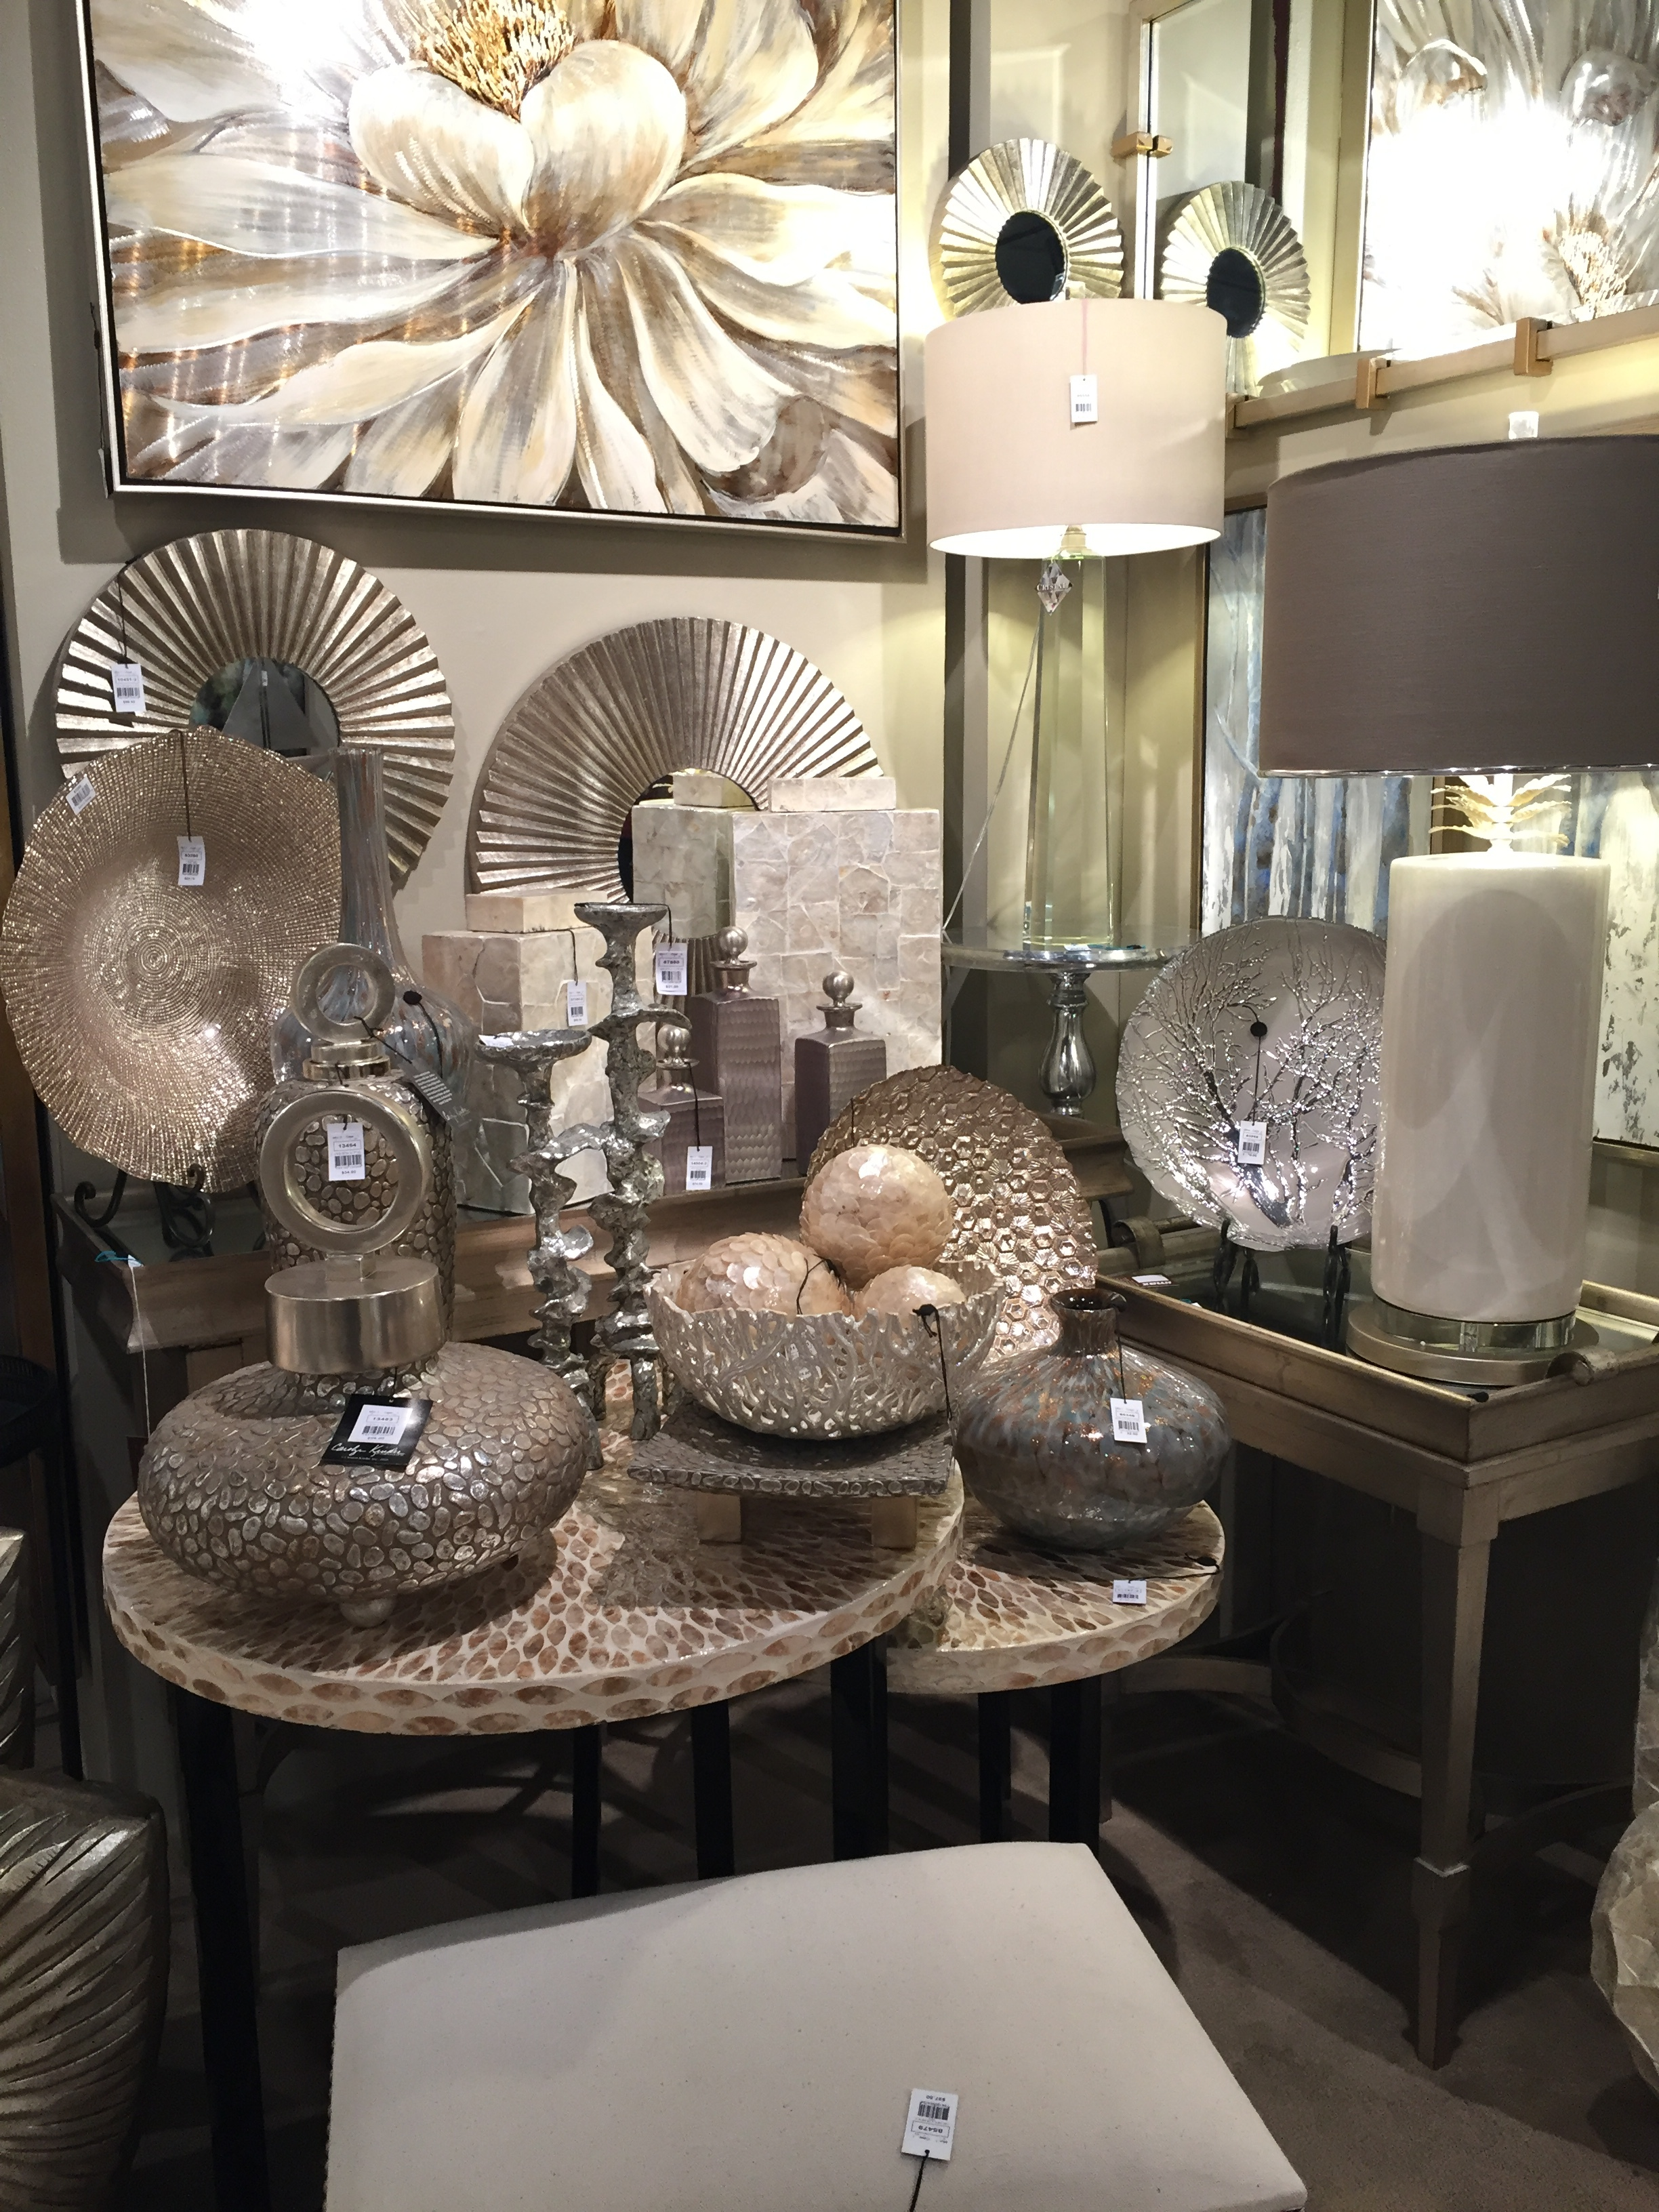 Iridescents are everywhere! Look at these decor items!